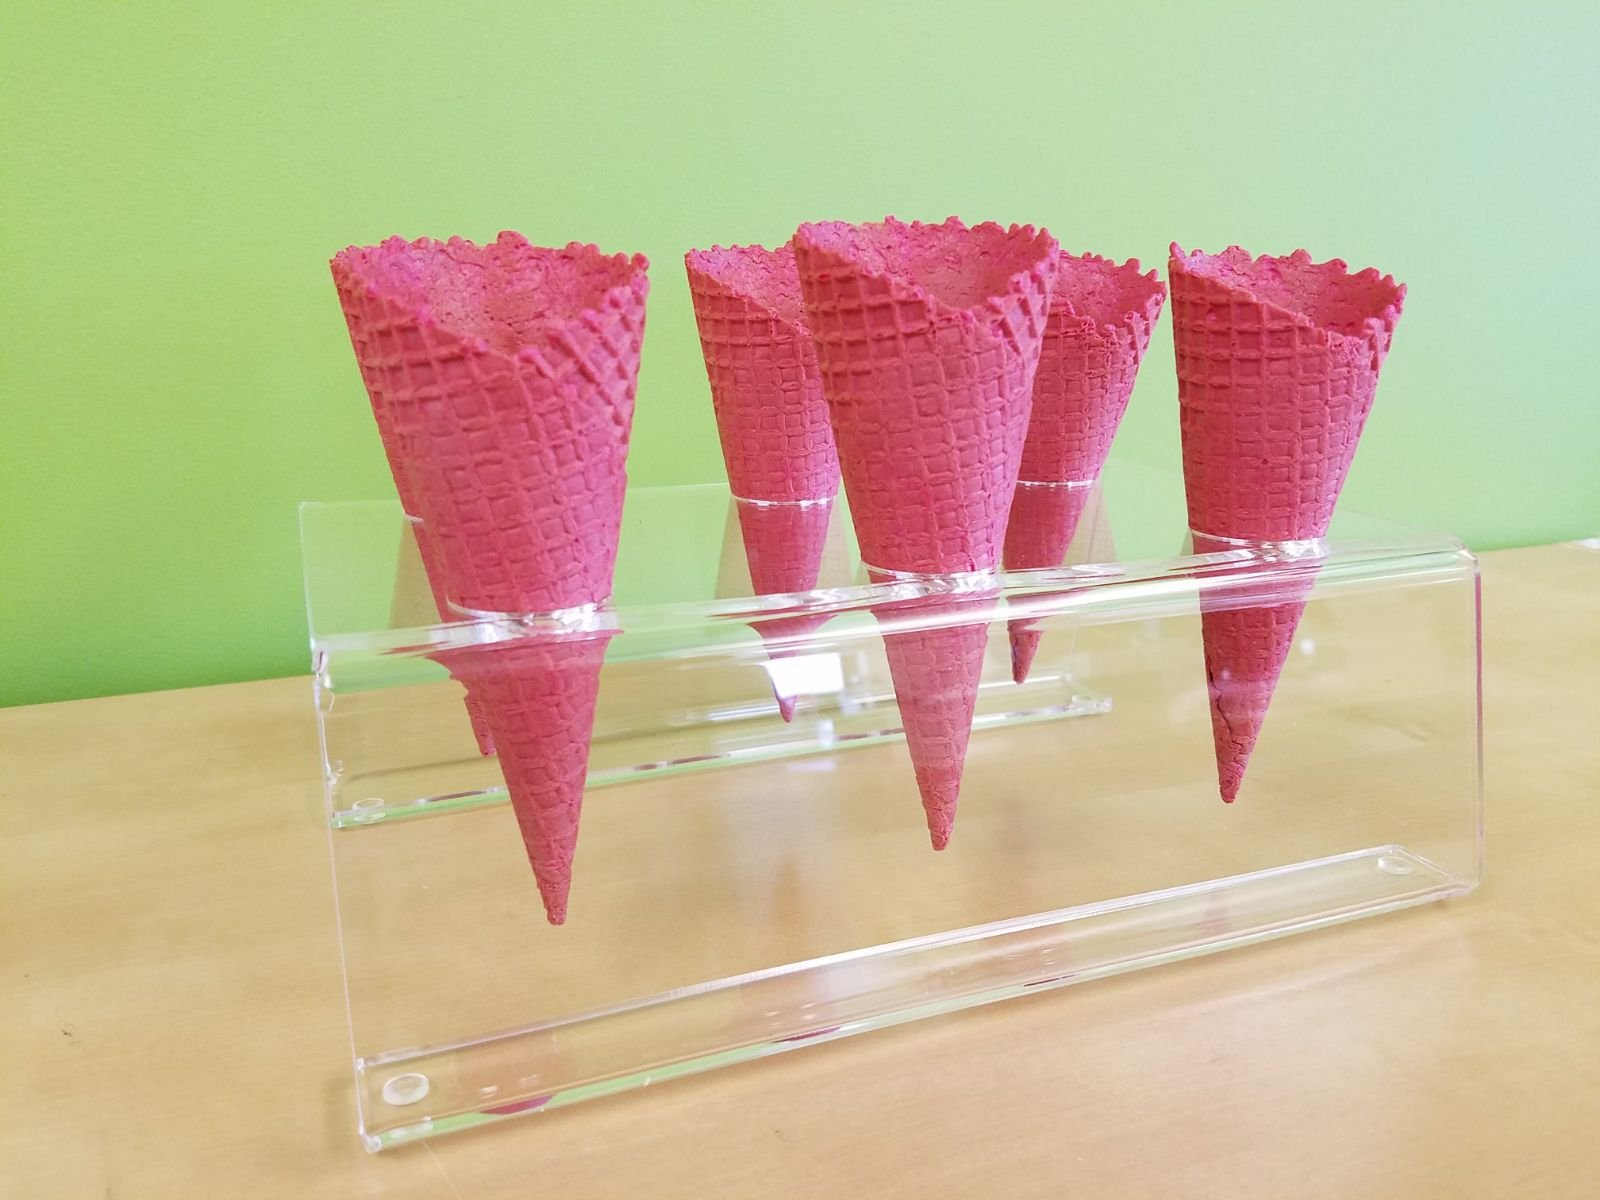 Cones (2.16'' X 5.5'') - 312 Units / Case (RED) by Altimate Foods (Image #3)